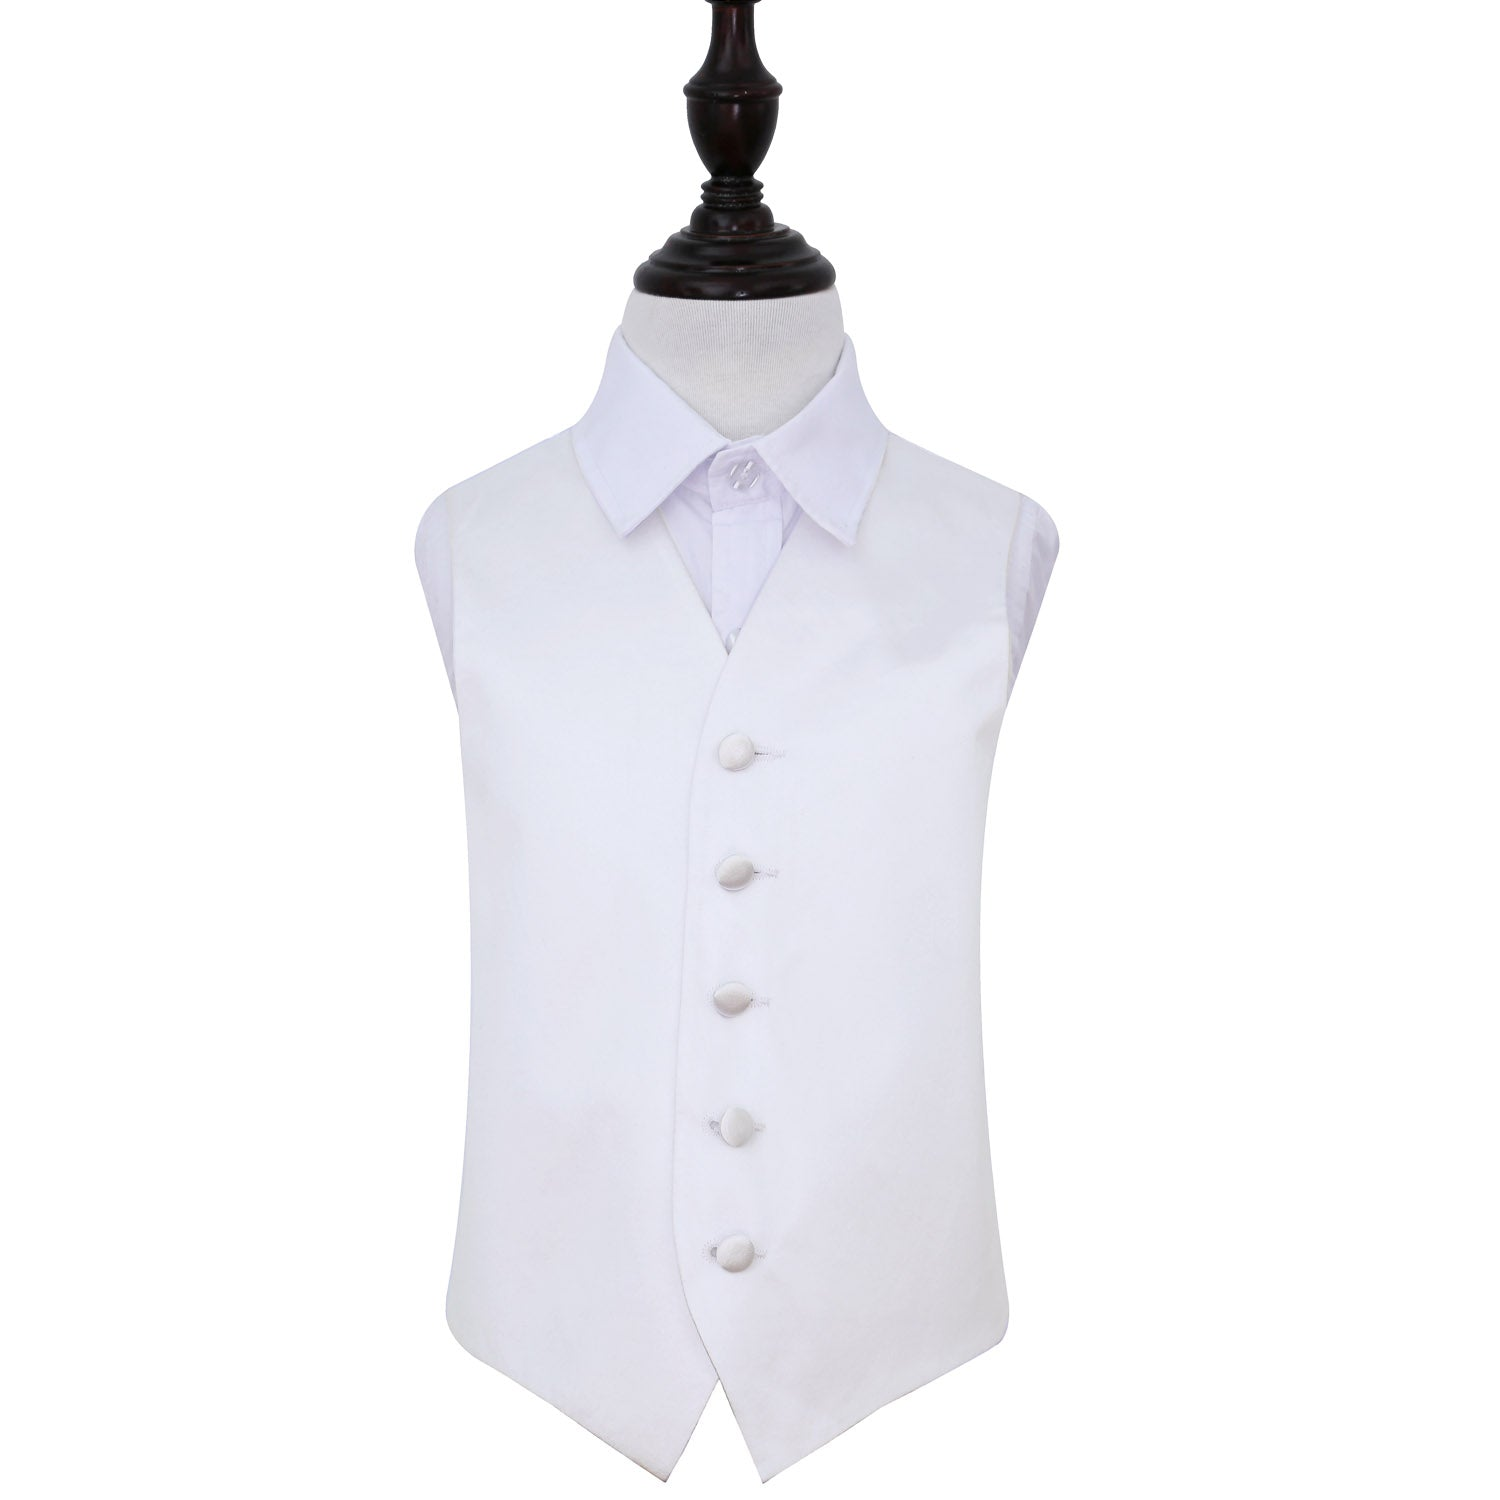 Plain Satin Waistcoat - Boys - White, 34', Clothing by Low Cost Gifts